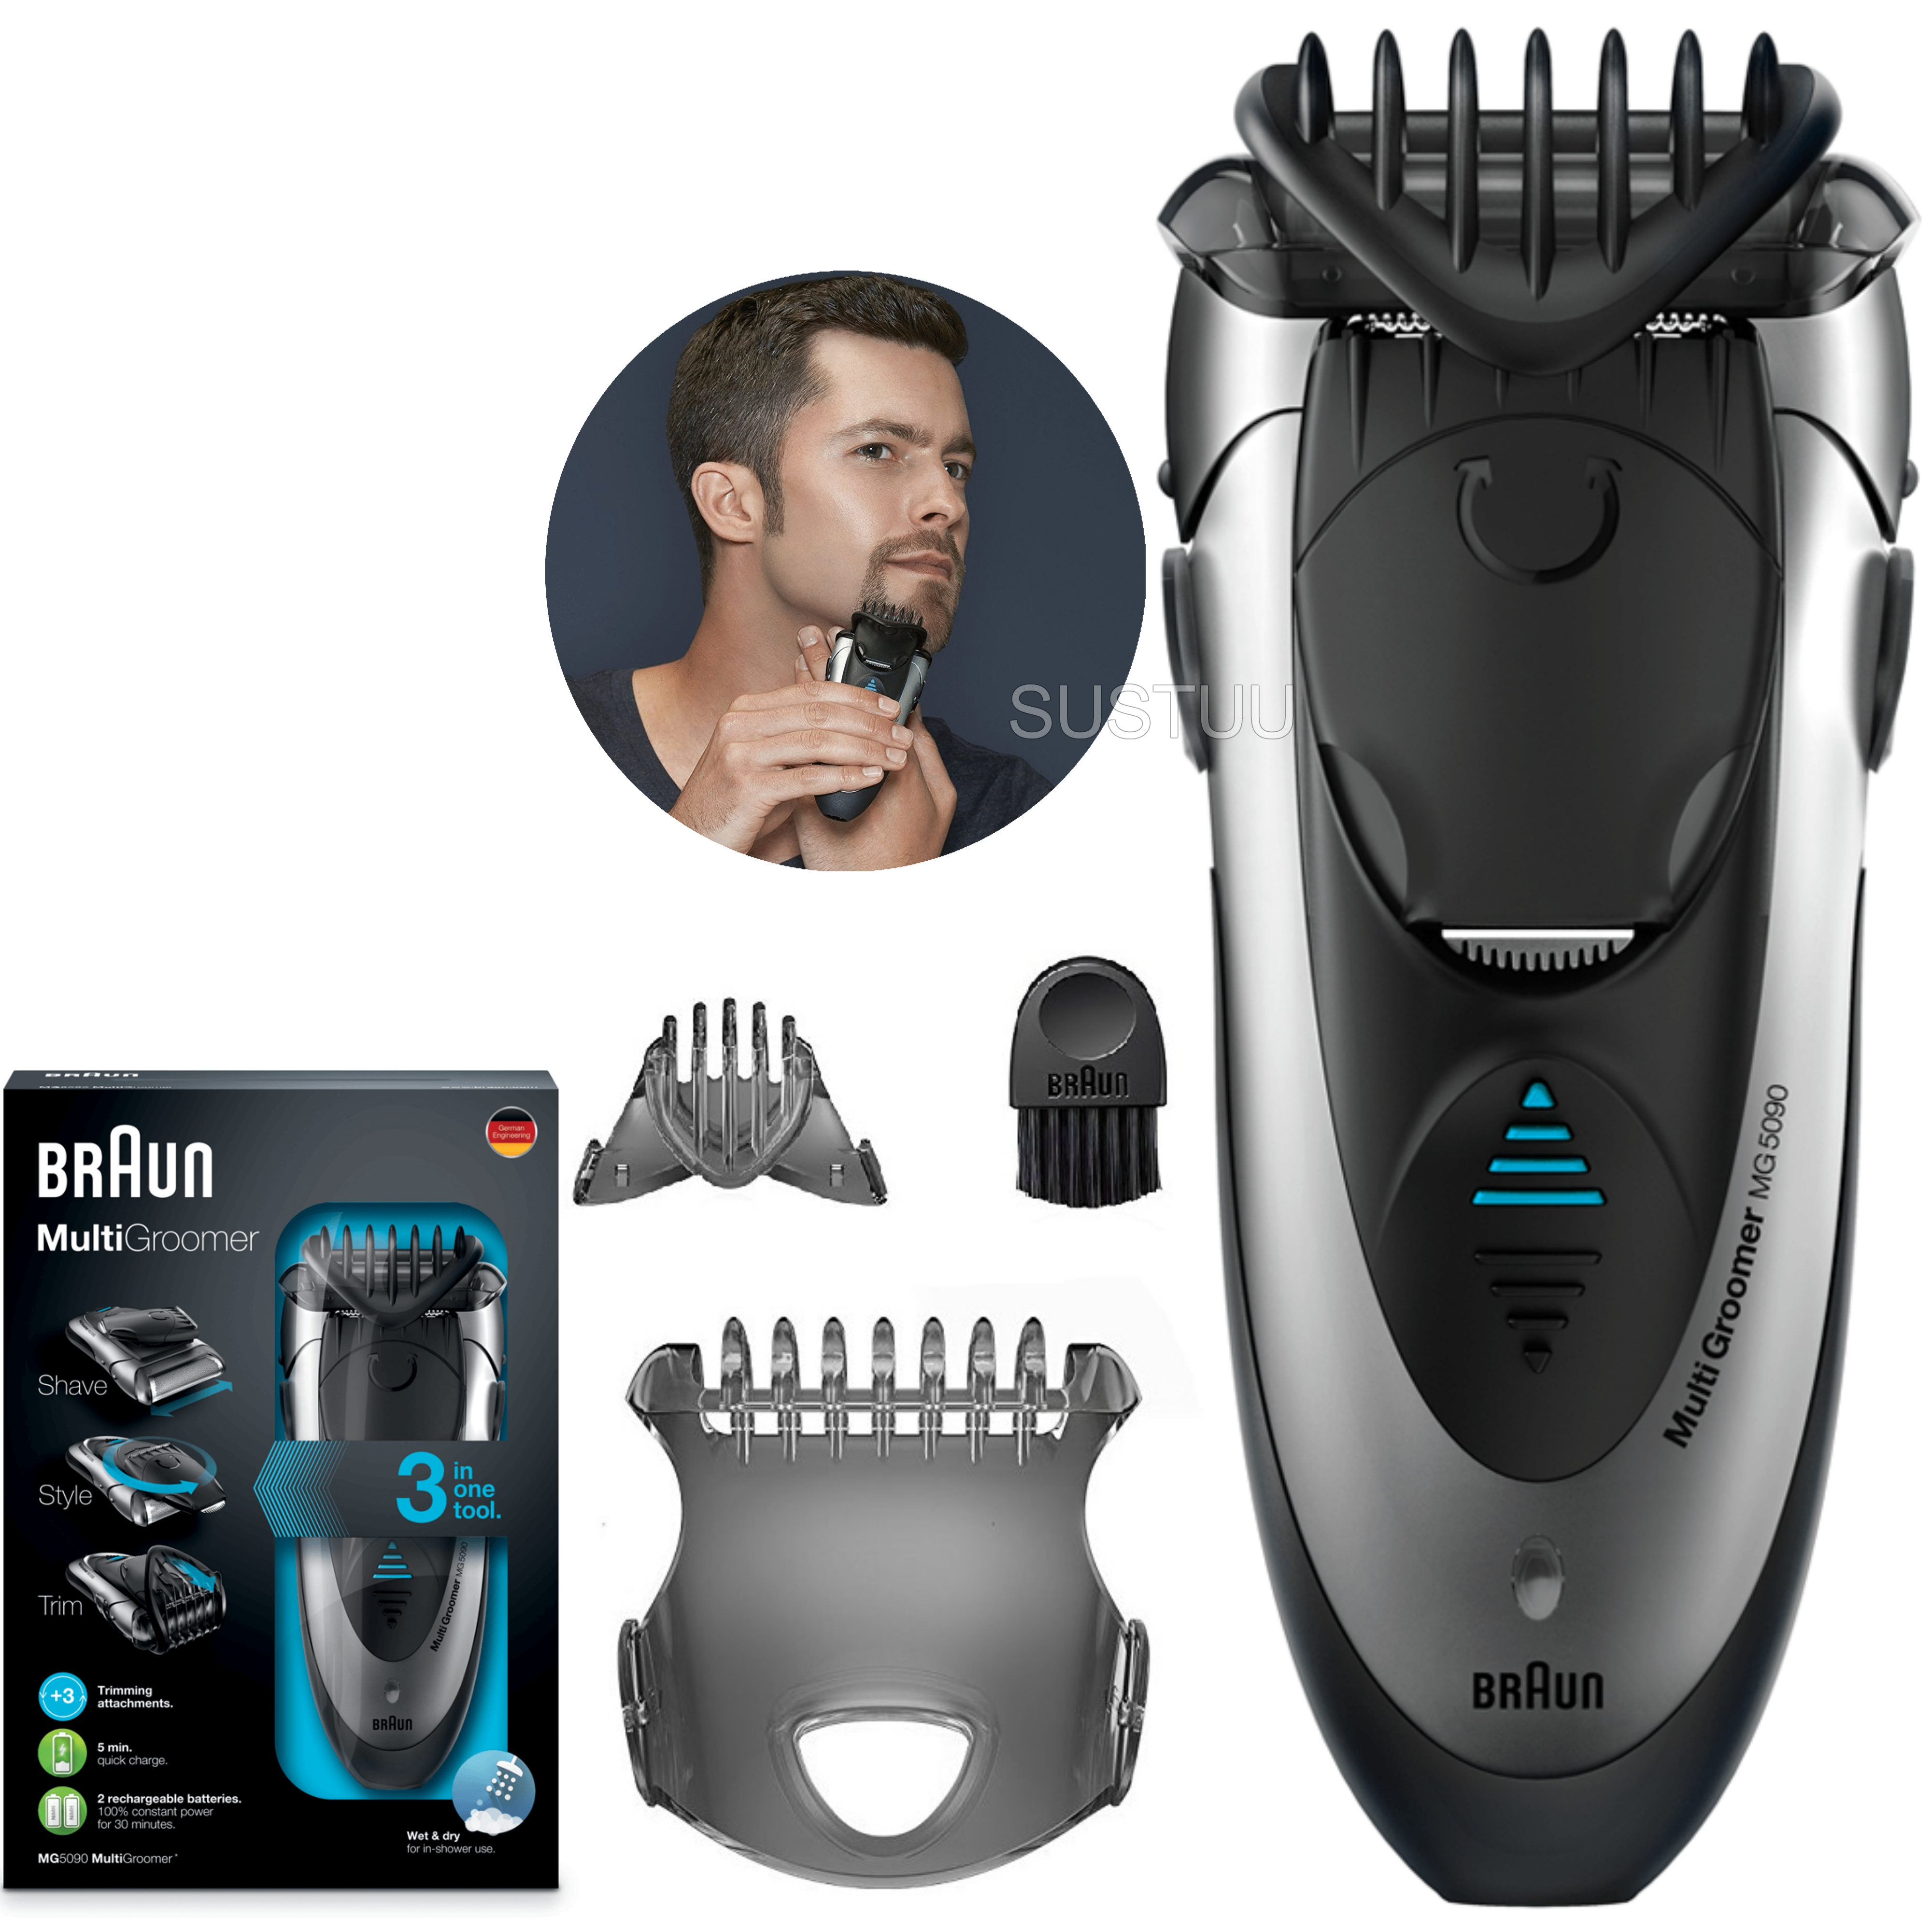 Braun Men's Multi Groomer | Shaver Styler & Beard Trimmer | Wet & Dry | 3 in 1 | MG5090